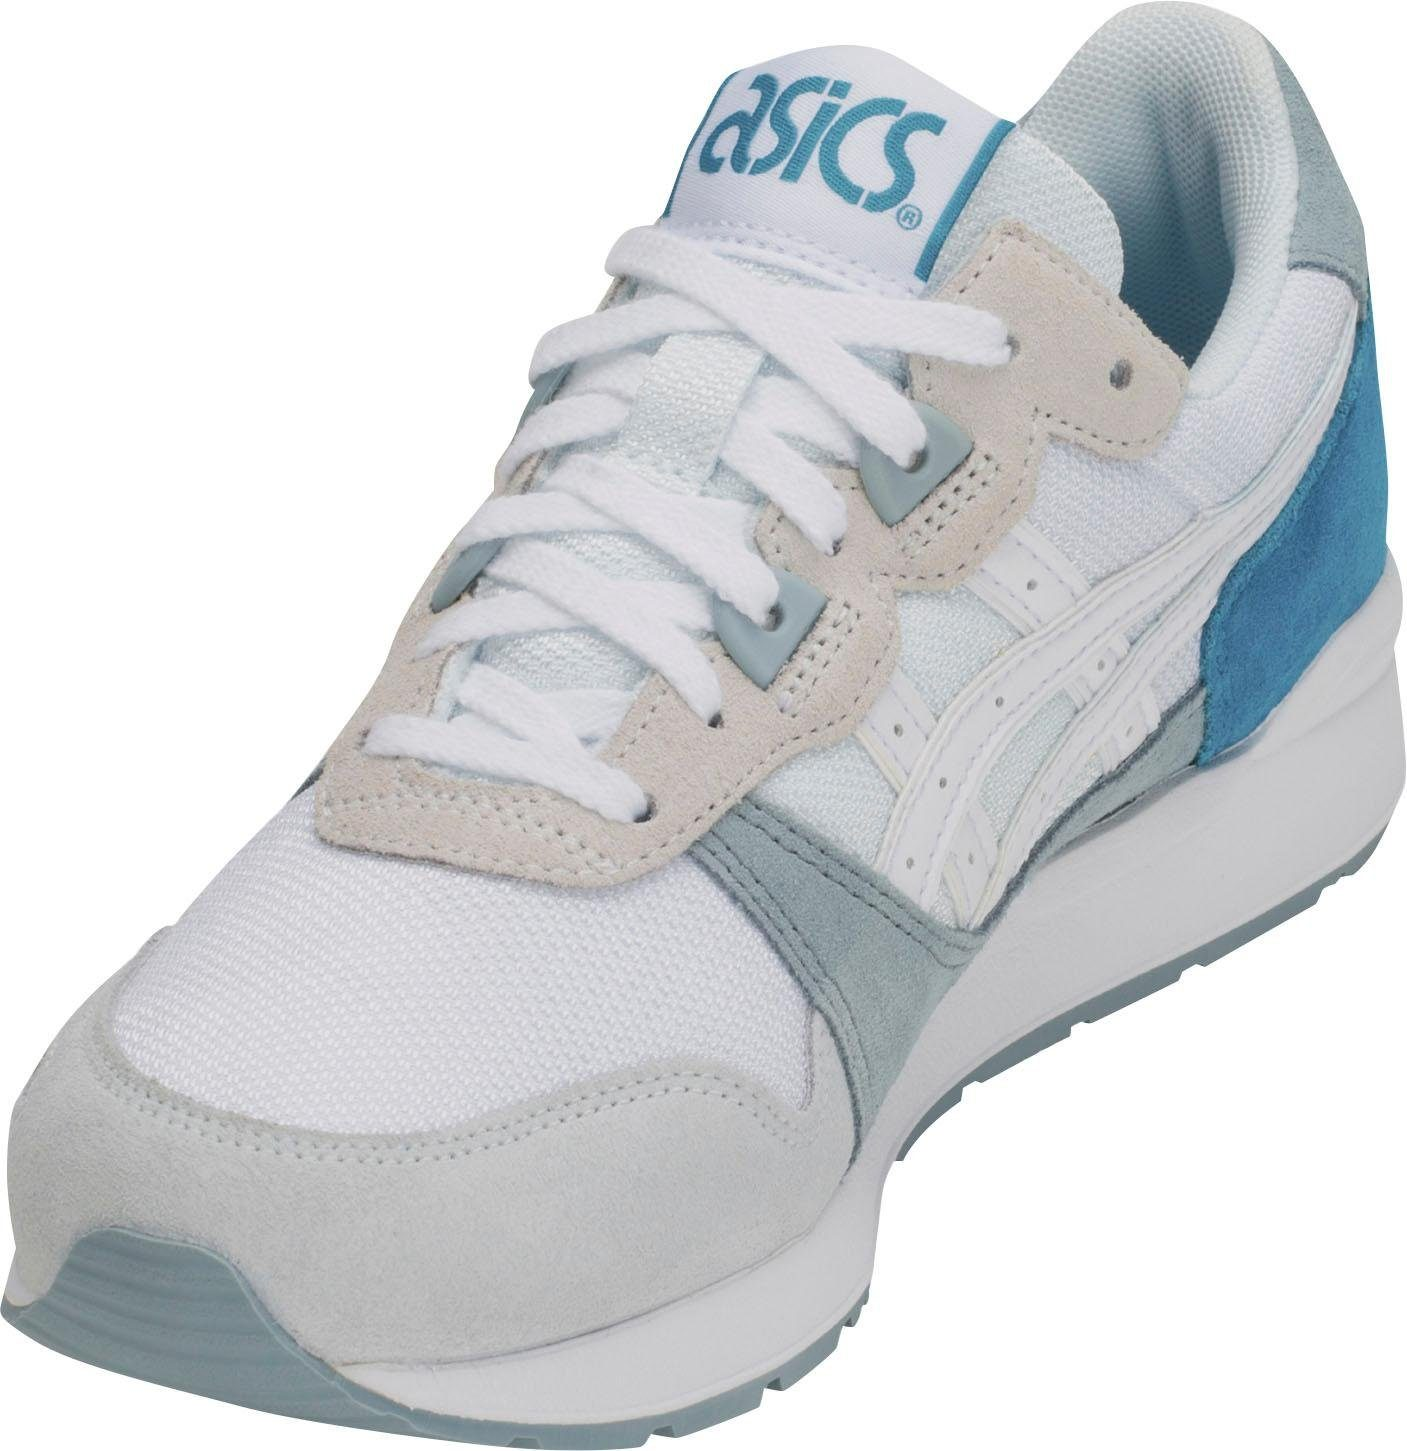 ASICS tiger sneakers »Gel lyte«